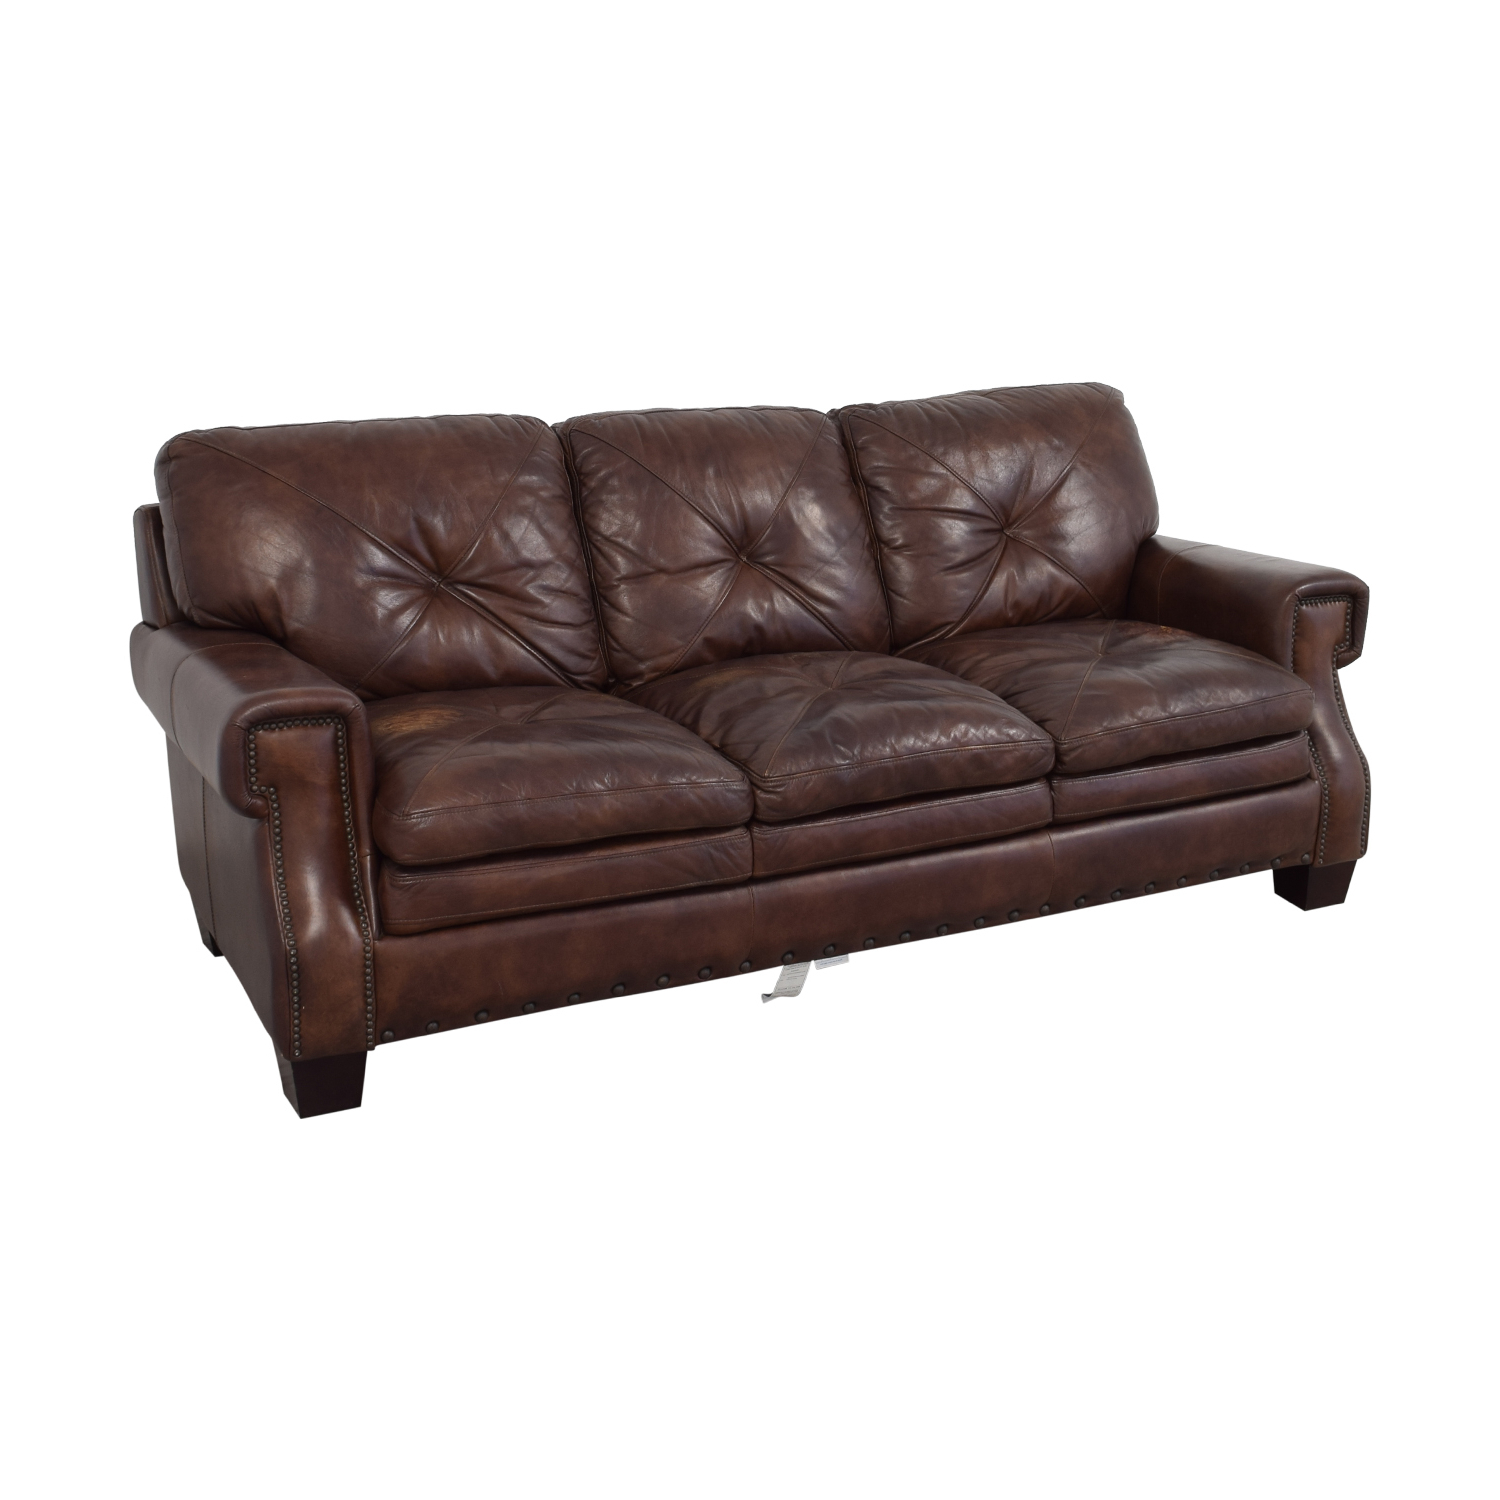 Trailblazer Gray Leather Power Reclining Sofas In Well Known Bobs Furniture Leather Sofa : Trailblazer Gray Leather (View 5 of 20)